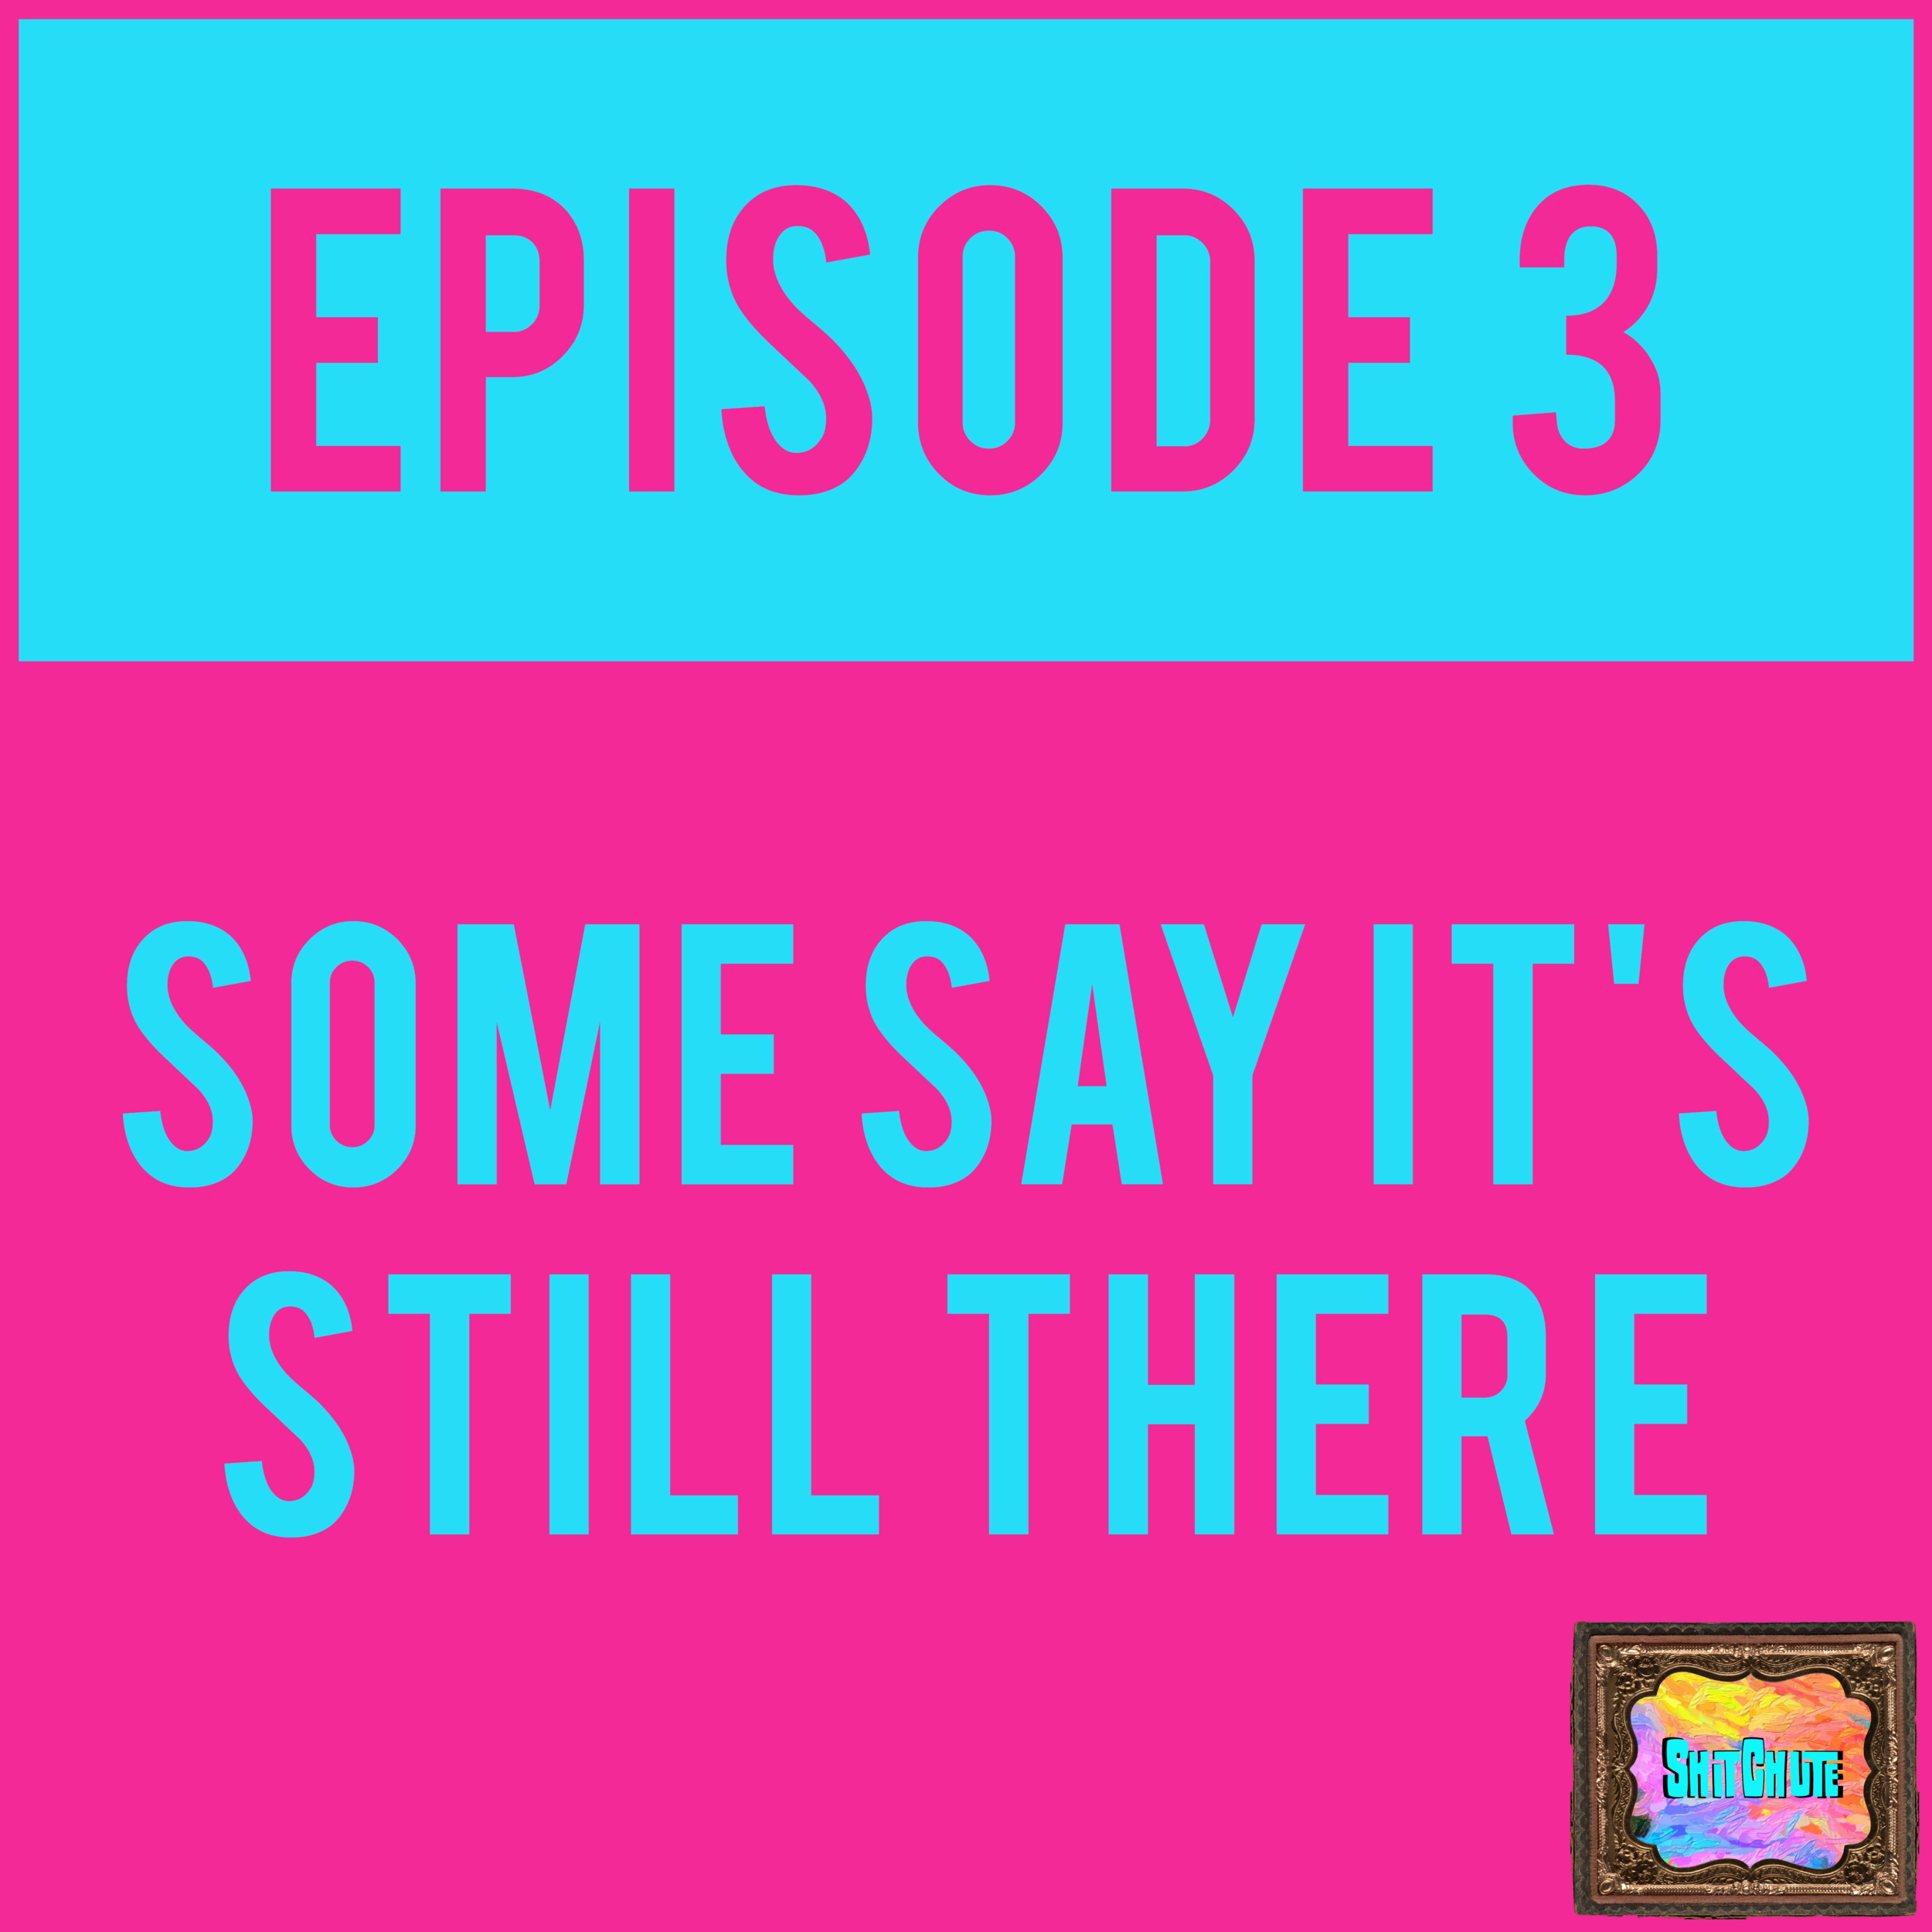 EPISODE 3 - Happy National #IDIOTSYNCRATICDAY! As promised we've released THREE BRAND NEW EPISODES, today! TWO THOUSAND FIFTY HUNDRED DOLLARS - EPISODE 39 with Danny Maza // ShitChute ($5 tier): SOME SAY IT'S STILL THERE - EPISODE 3 // AirHeads ($10 tier): HUMAN GOOP - EPISODE 2 are all out and ready for you to tear into. Go. Freaking. Nuts.